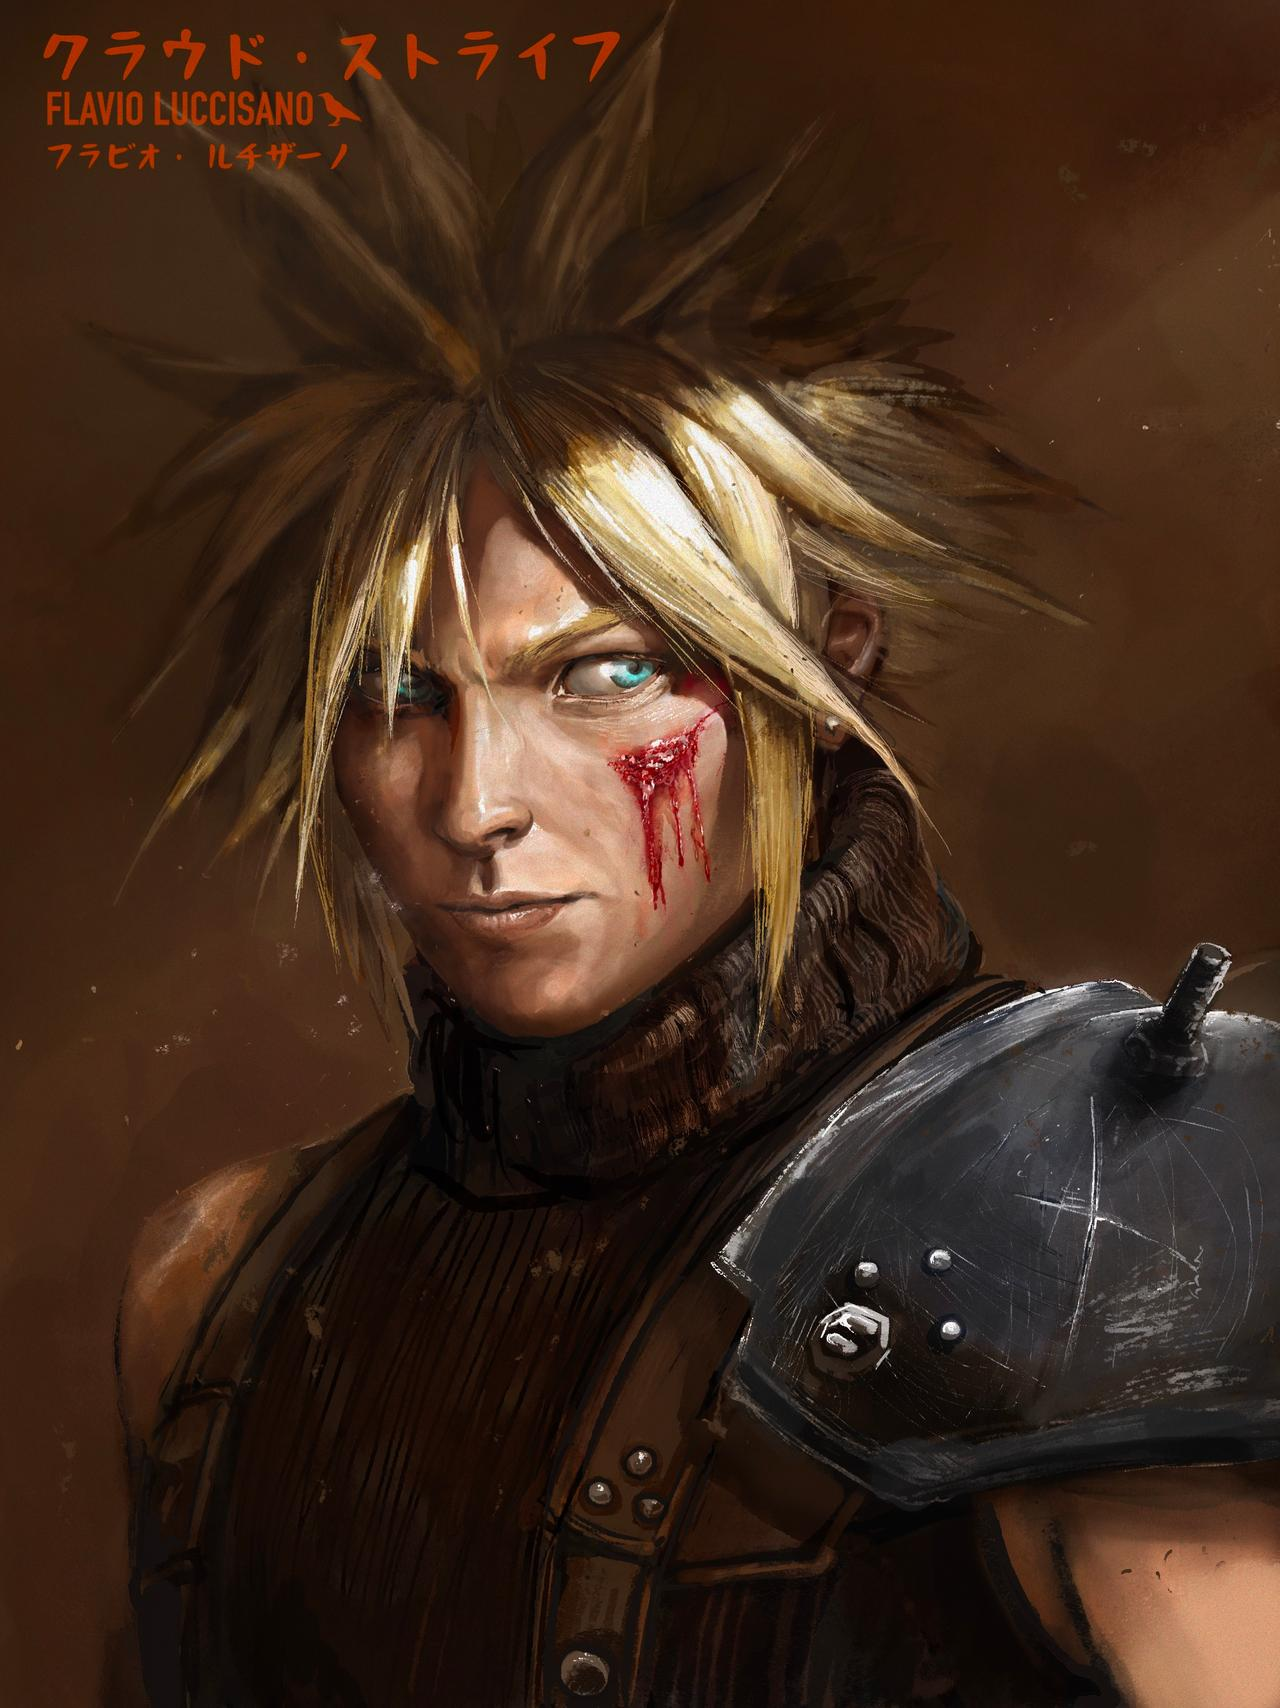 cloud_strife_by_flavioluccisano_ddvm4we-